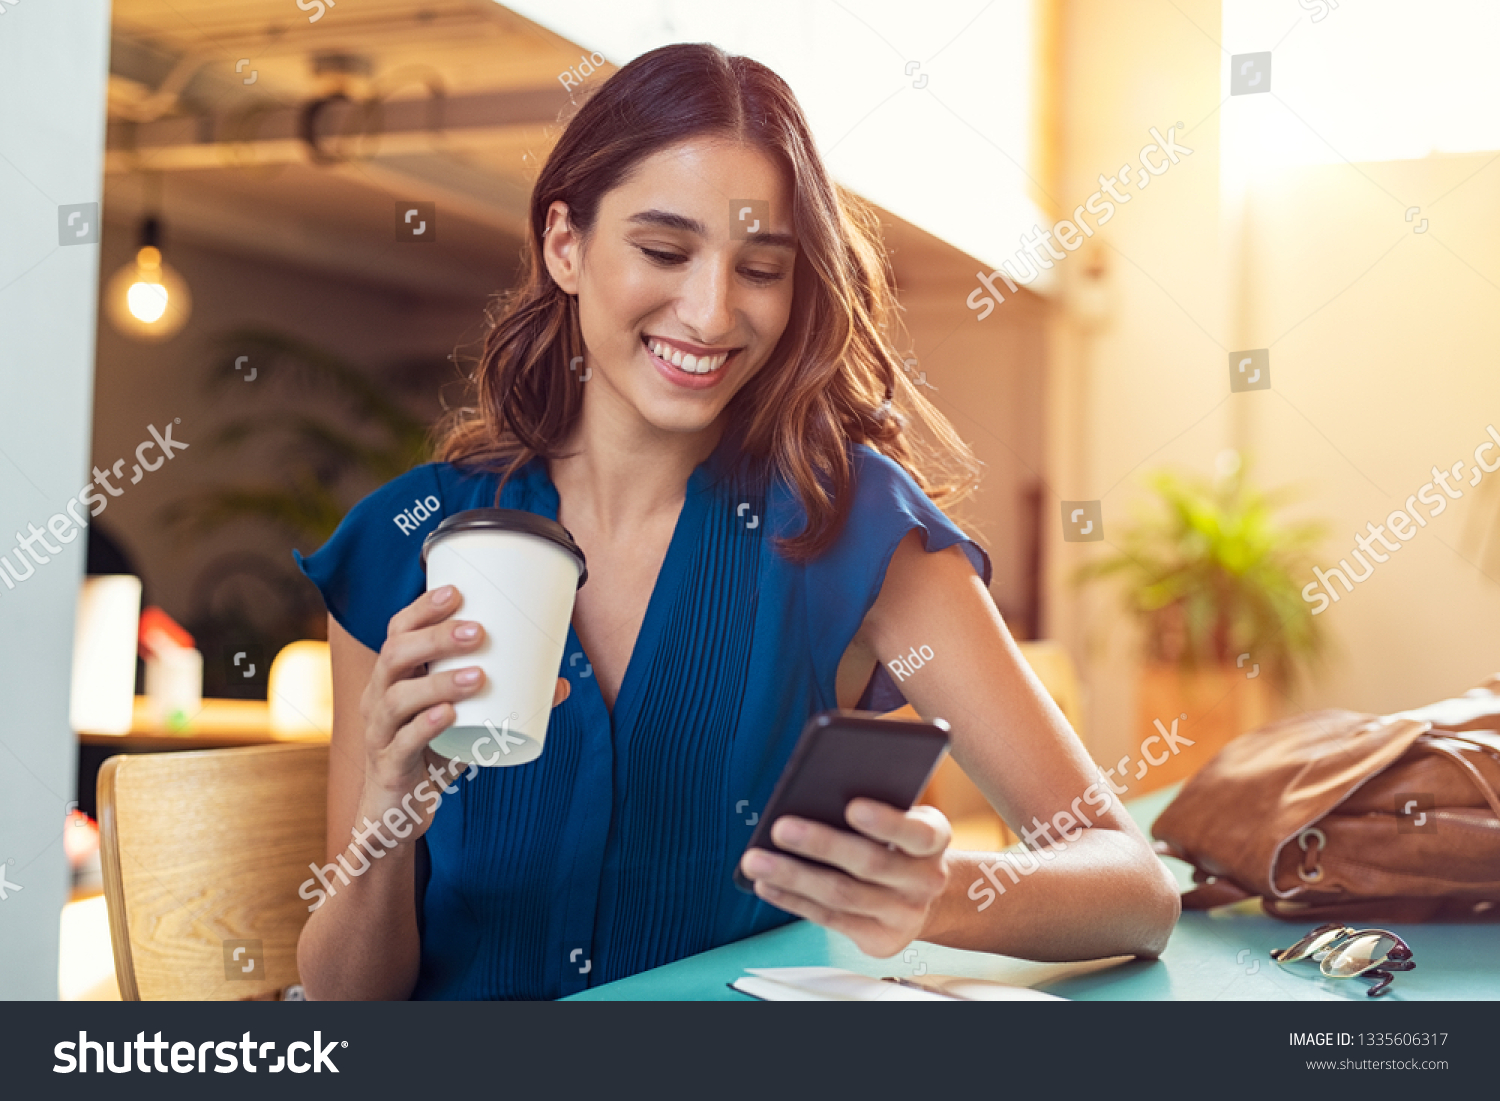 Young beautiful woman holding coffee paper cup and looking at smartphone while sitting at cafeteria. Happy university student girl using mobile phone. Businesswoman drinking coffee and smiling. #1335606317